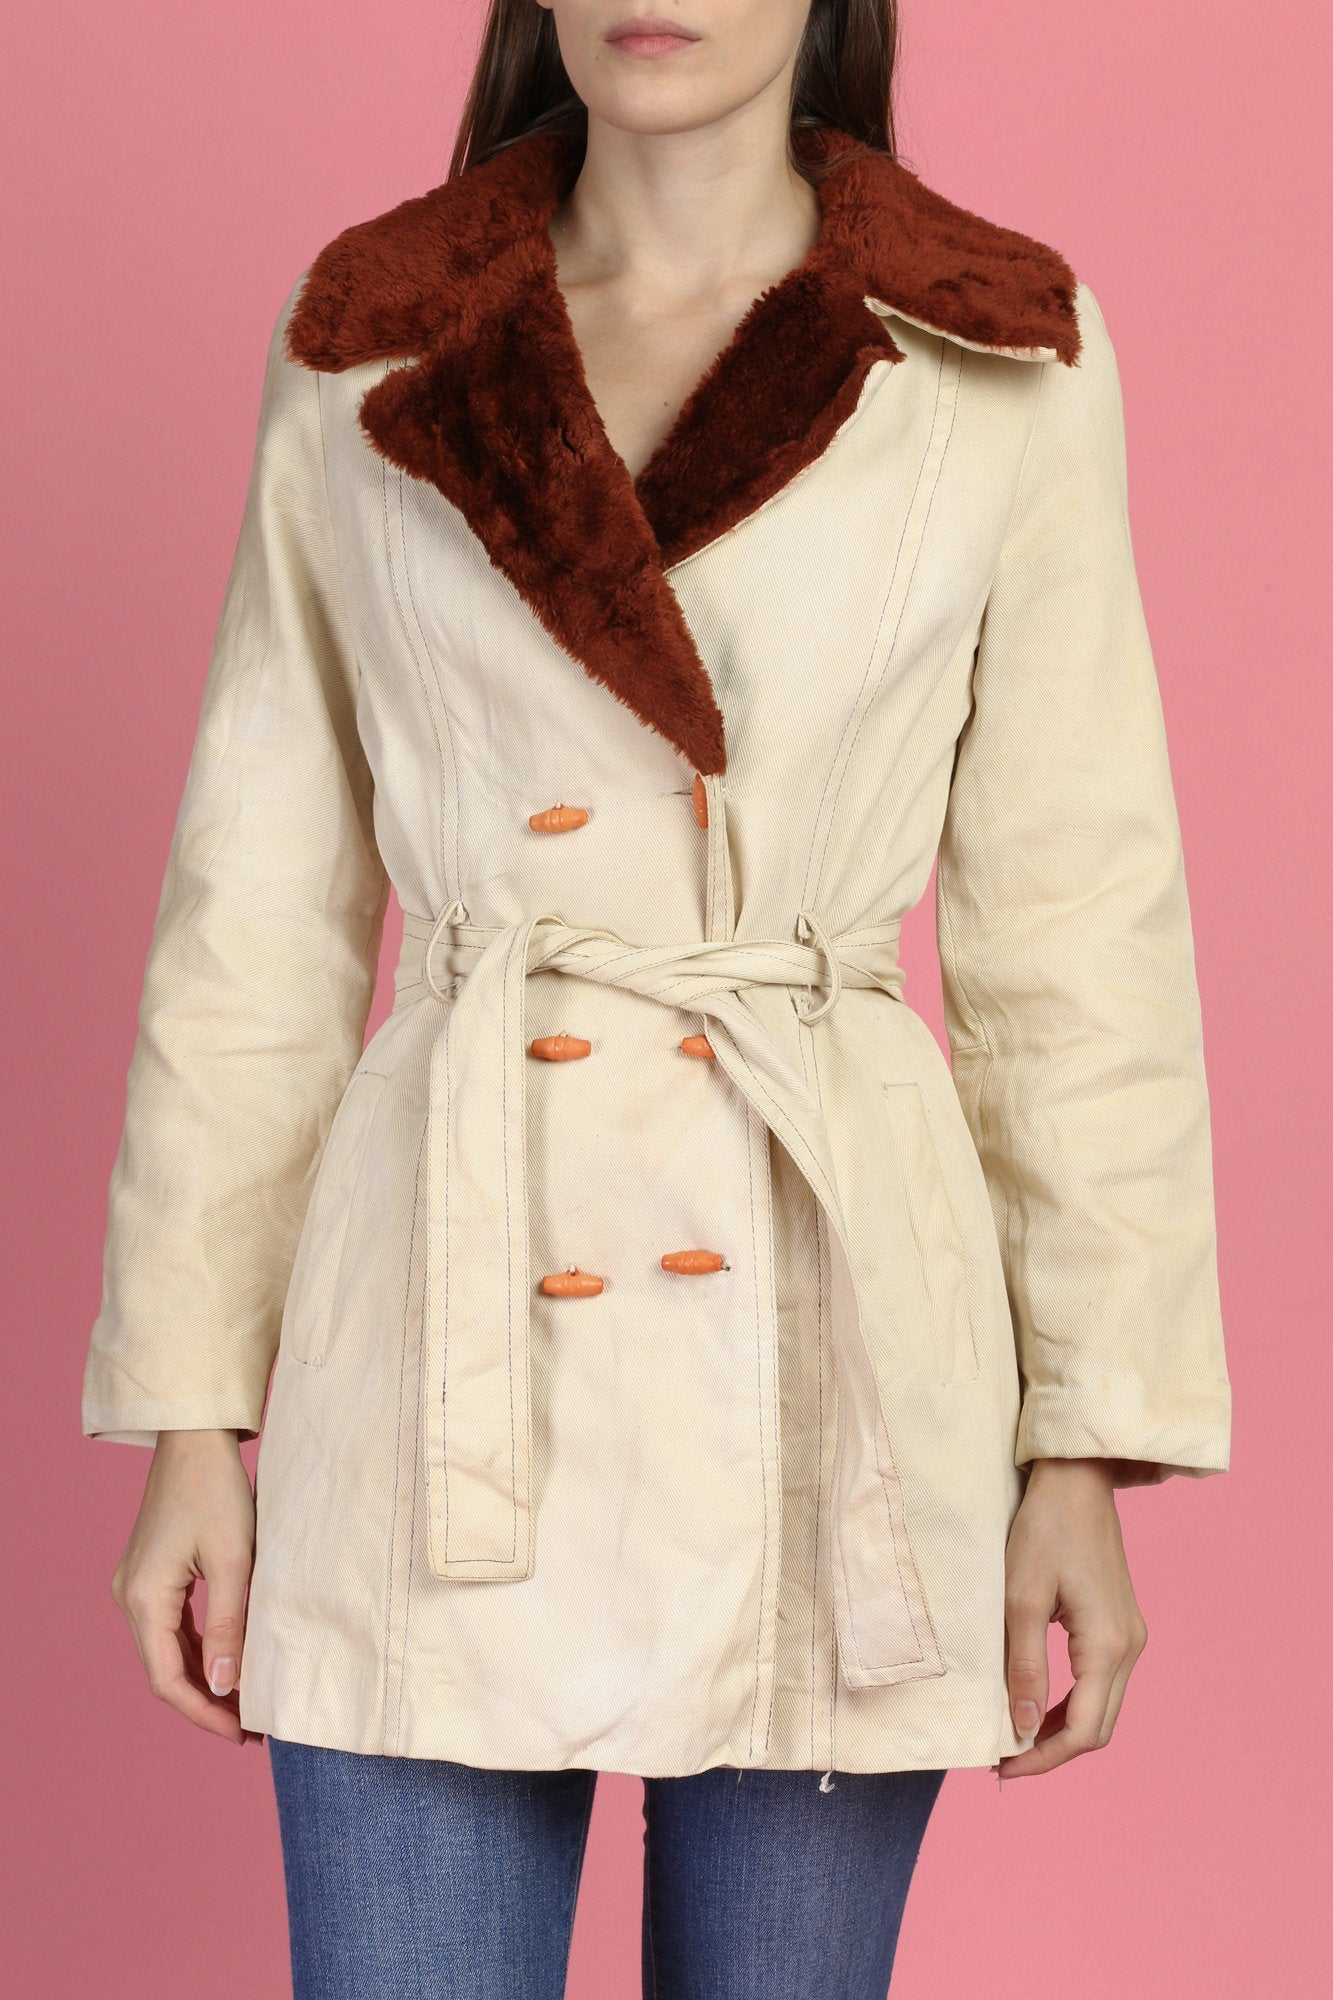 70s Faux Fur Trim Belted Jacket - Extra Small